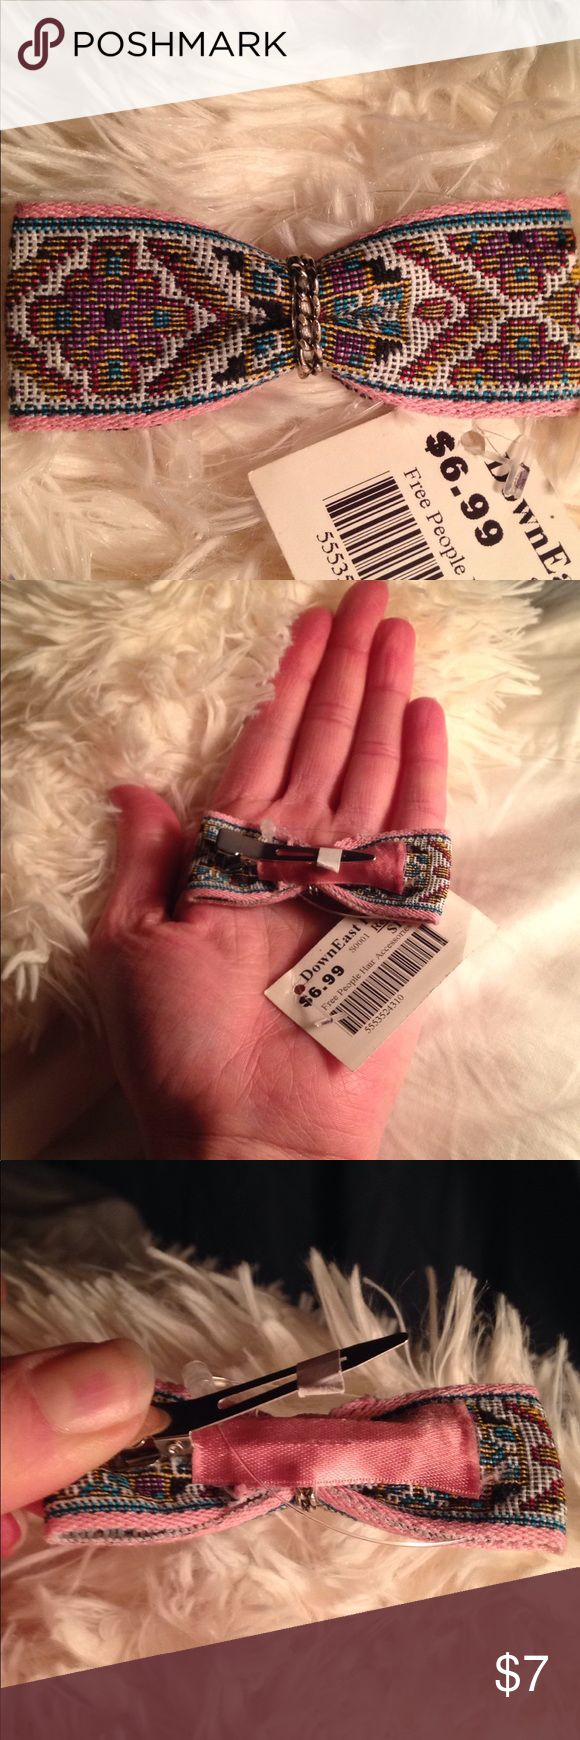 Free People Embroidered Bow Pin Curl  Clip + Chain 45mm single prong alligator clip Colors: pink, gold, berry, red, turquoise, black and white Retail: $14.99 Free People Accessories Hair Accessories